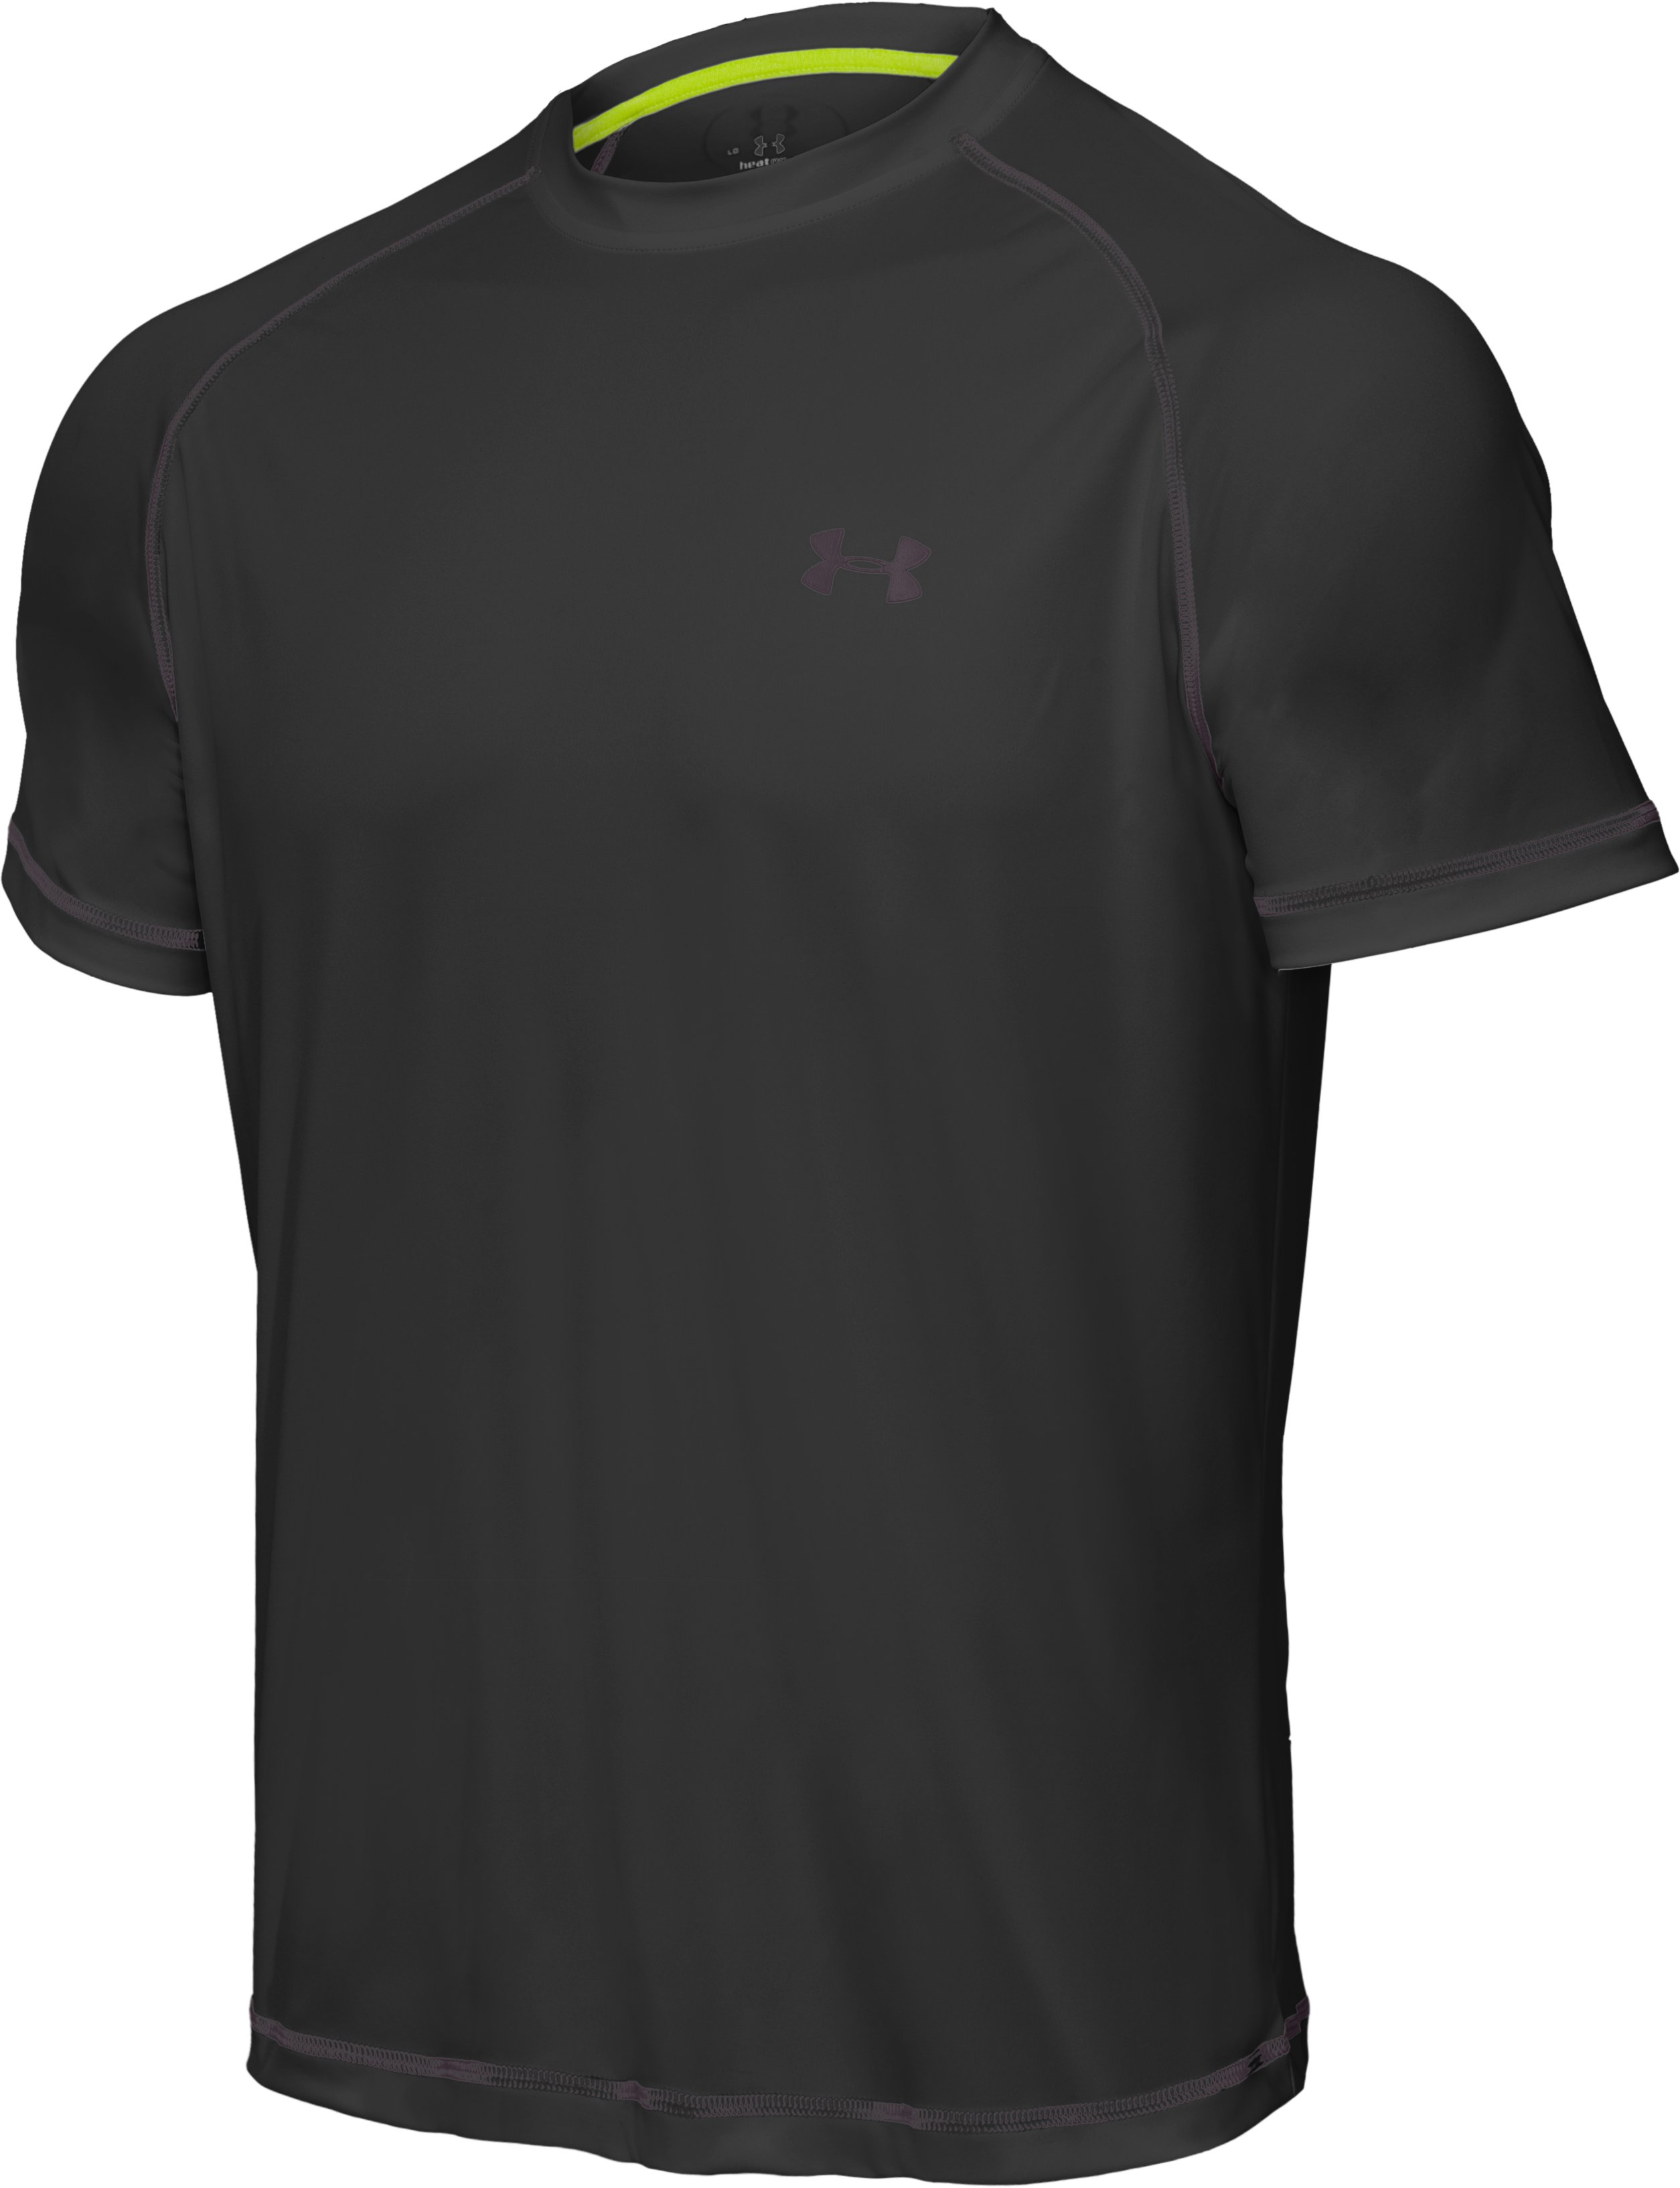 Men's UA Catalyst Short Sleeve T-Shirt, Black